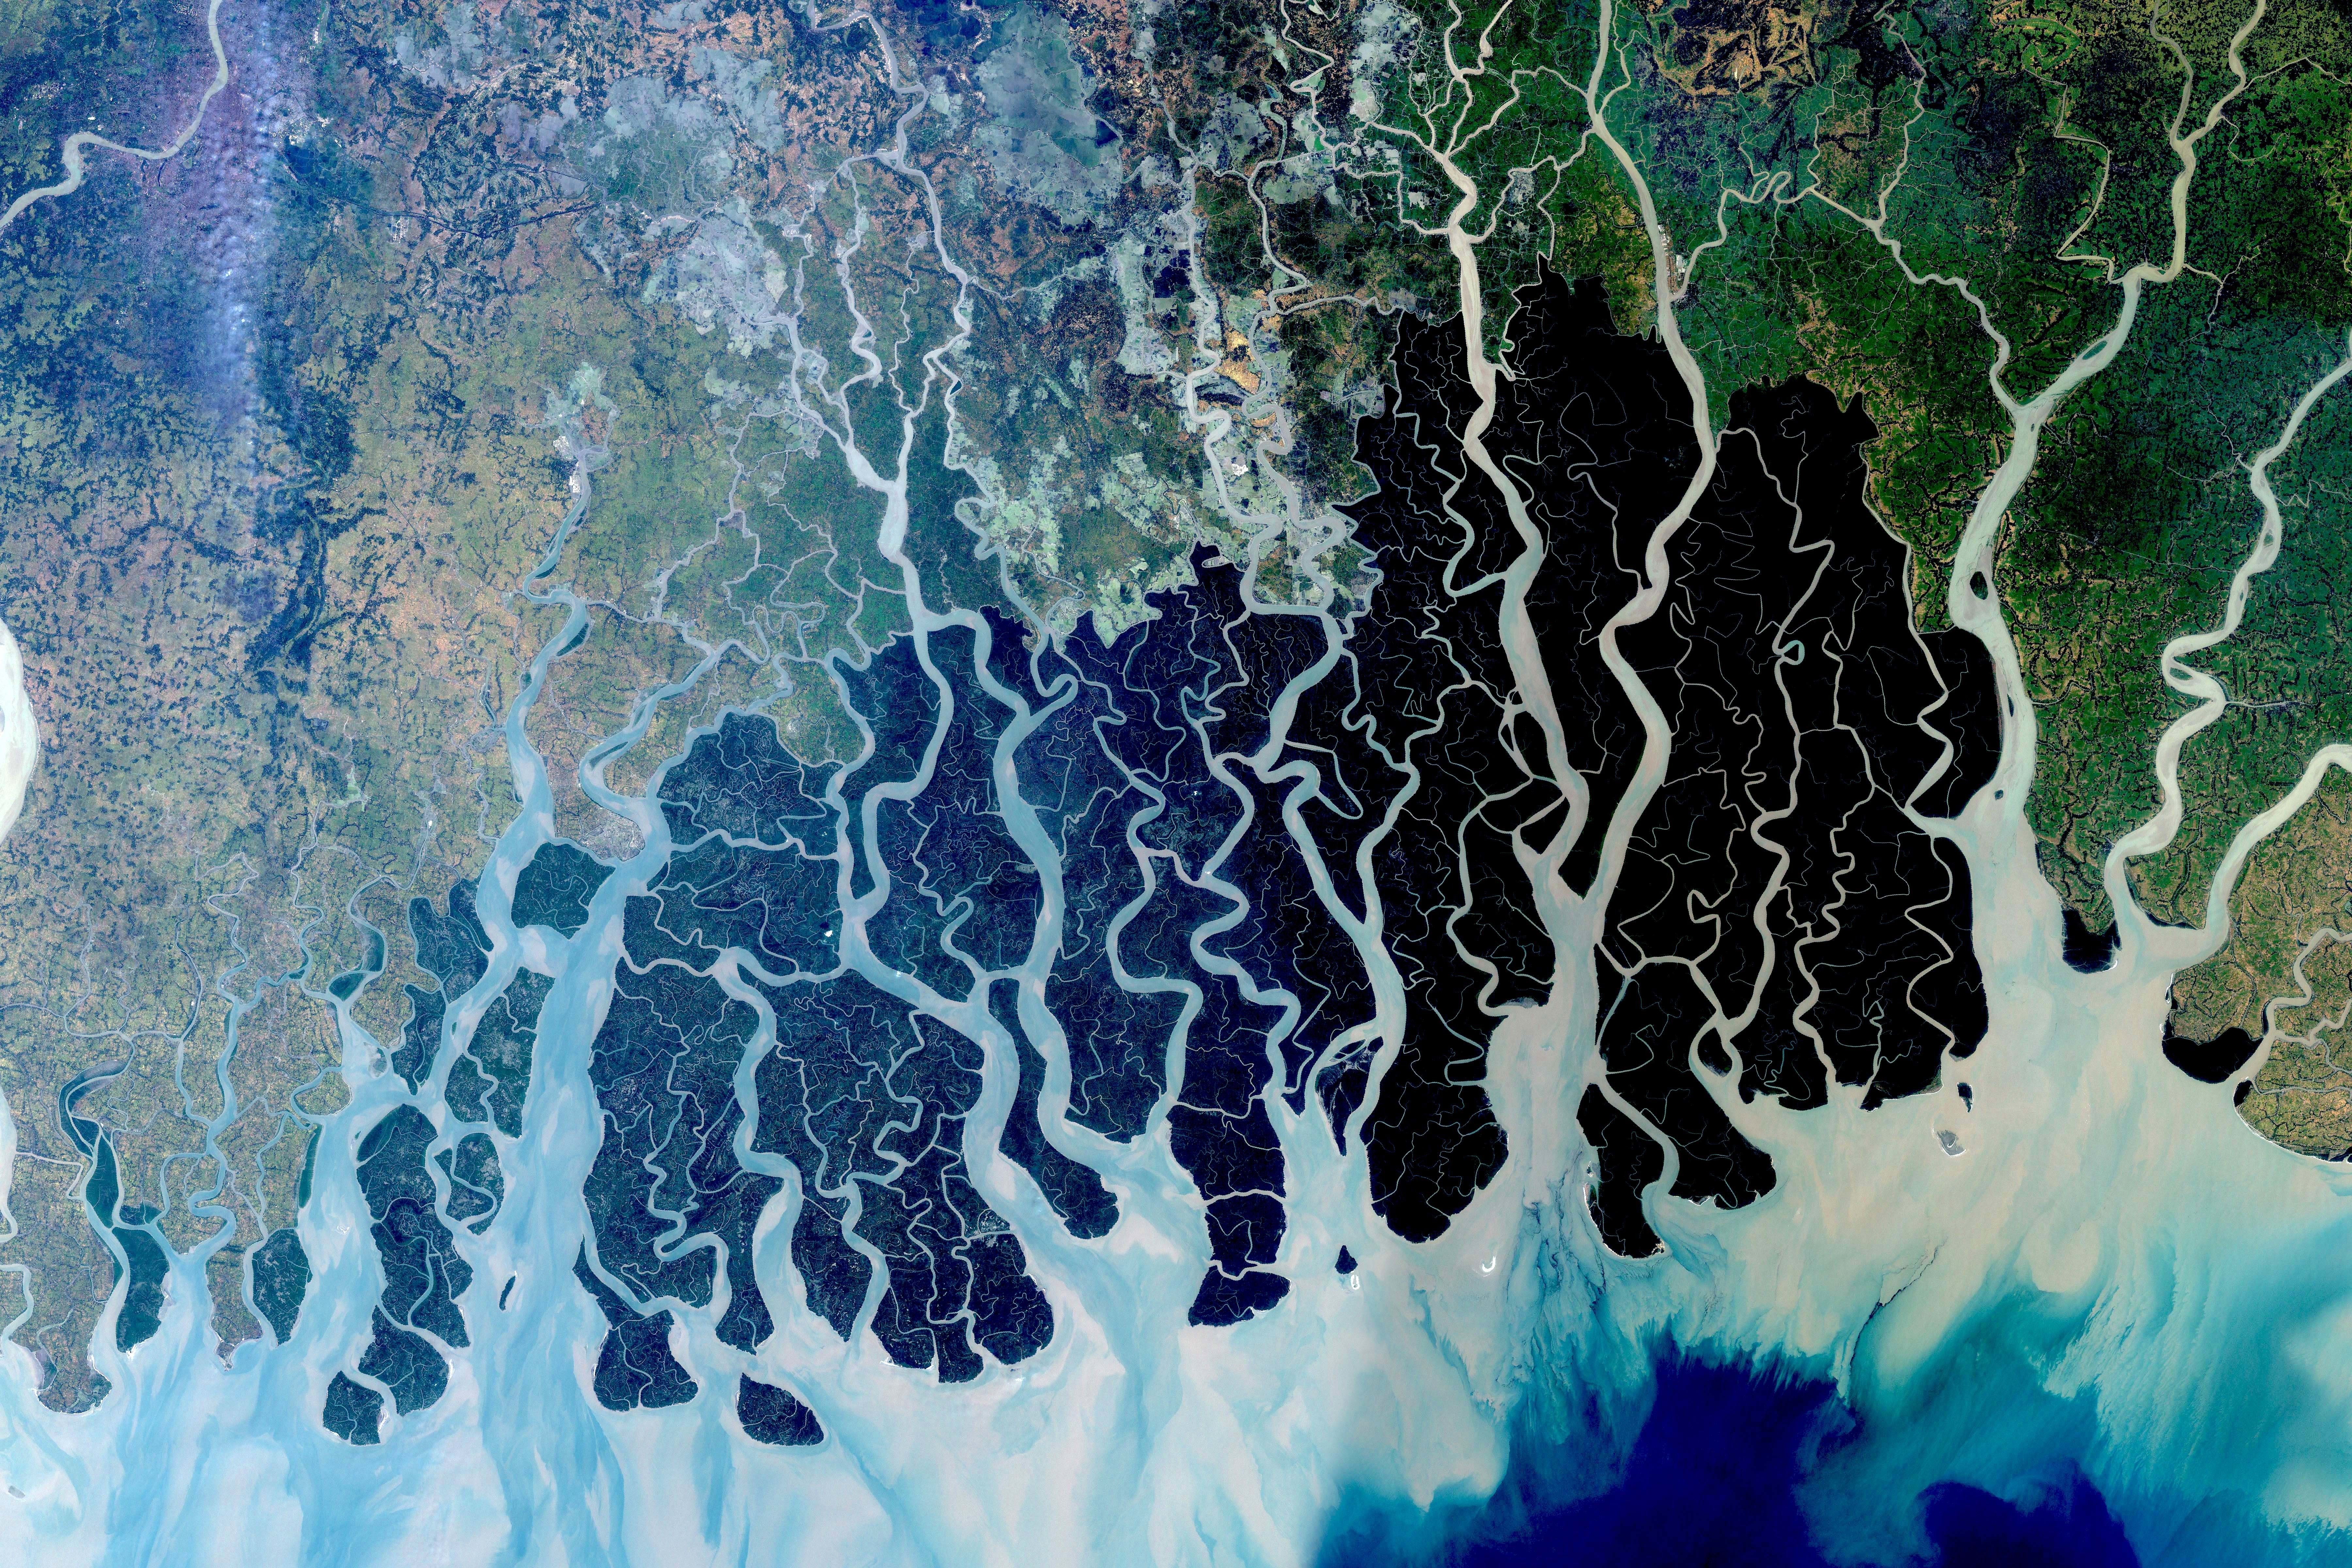 Eyes On Nature How Satellite Imagery Is Transforming Conservation Science High Resolution Earth Imagery Has Provided Ecologists Art Abstract Artwork Imagery